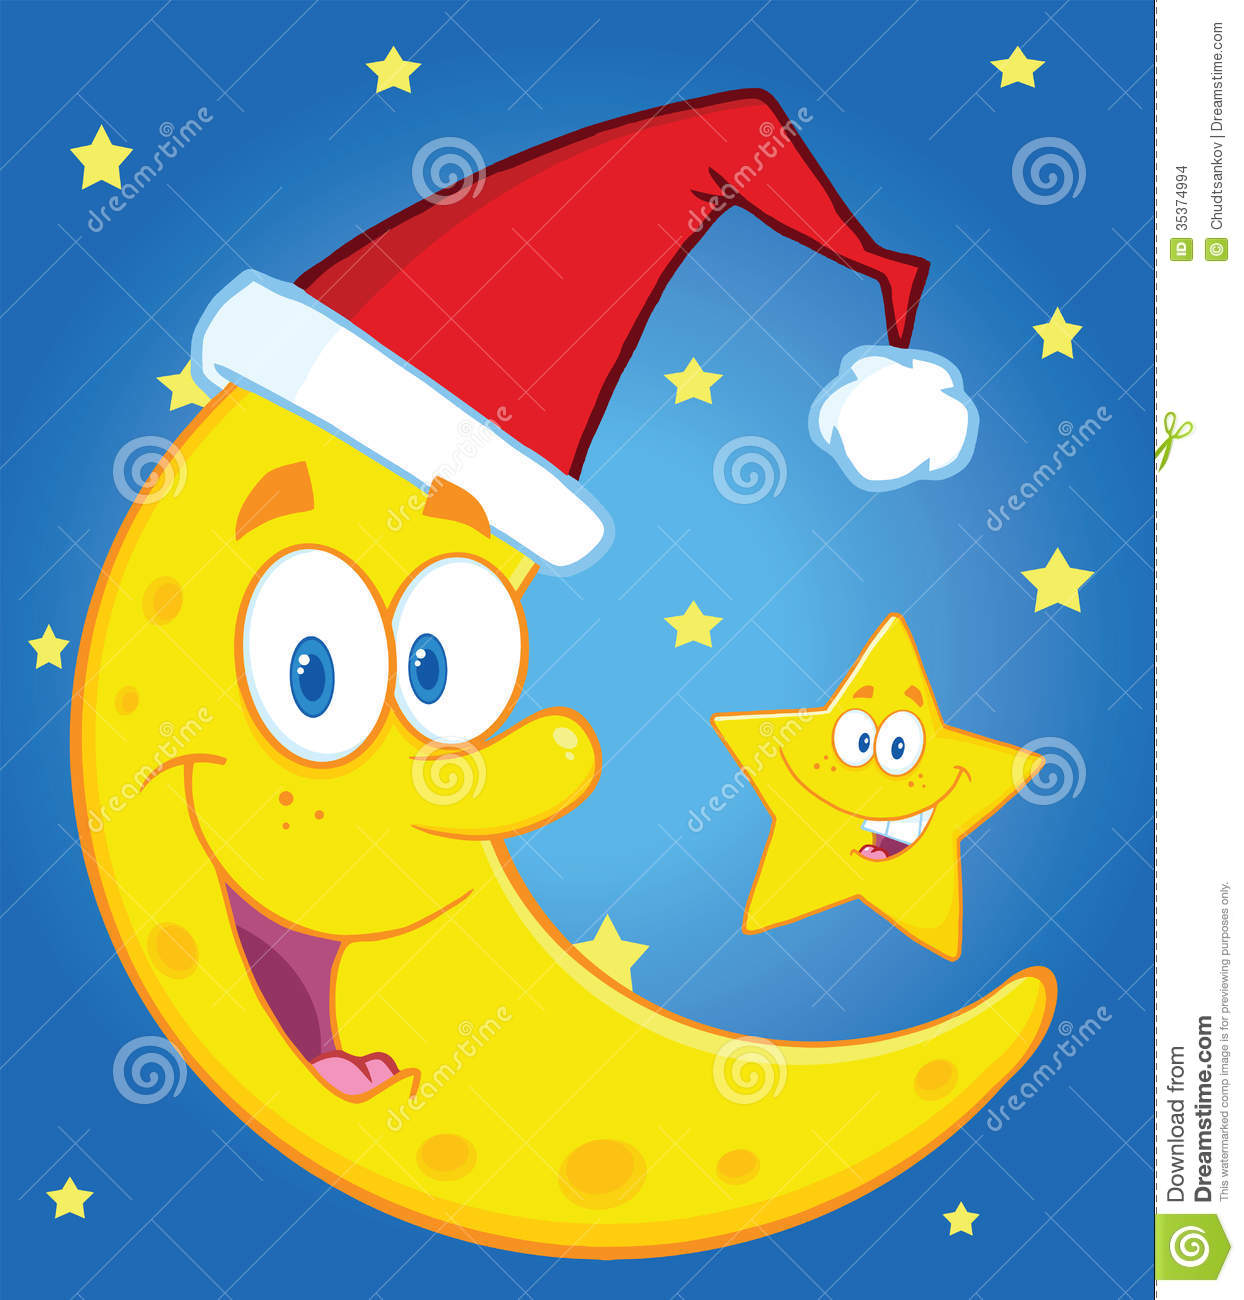 Stock Images: Smiling Crescent Moon With Santa Hat And Happy Christmas ...